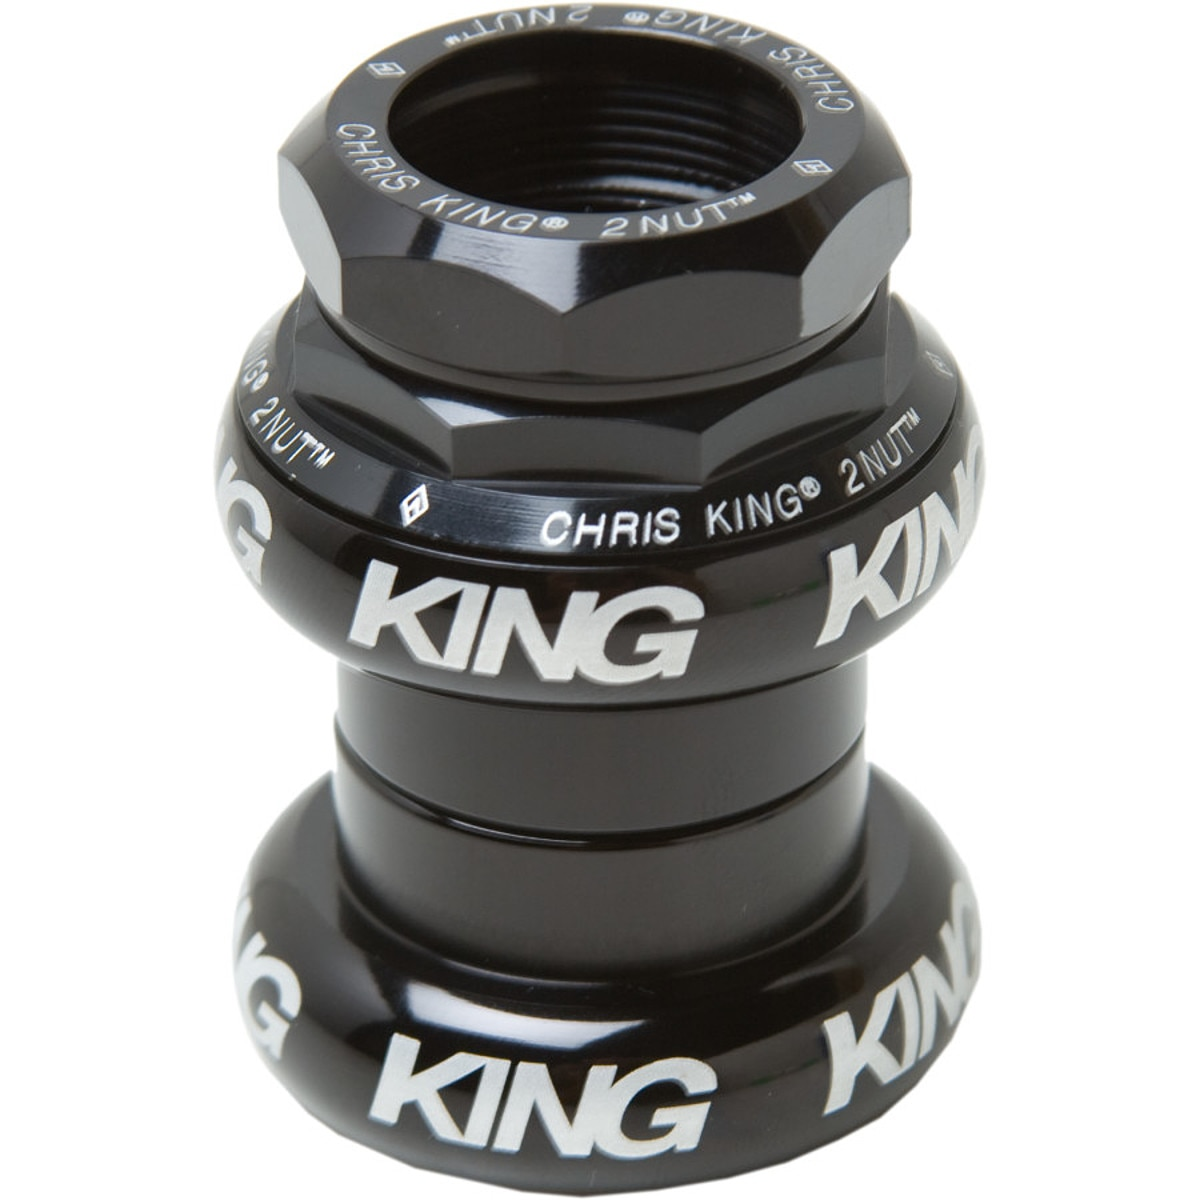 Chris King 2Nut Threadset Headset  1in